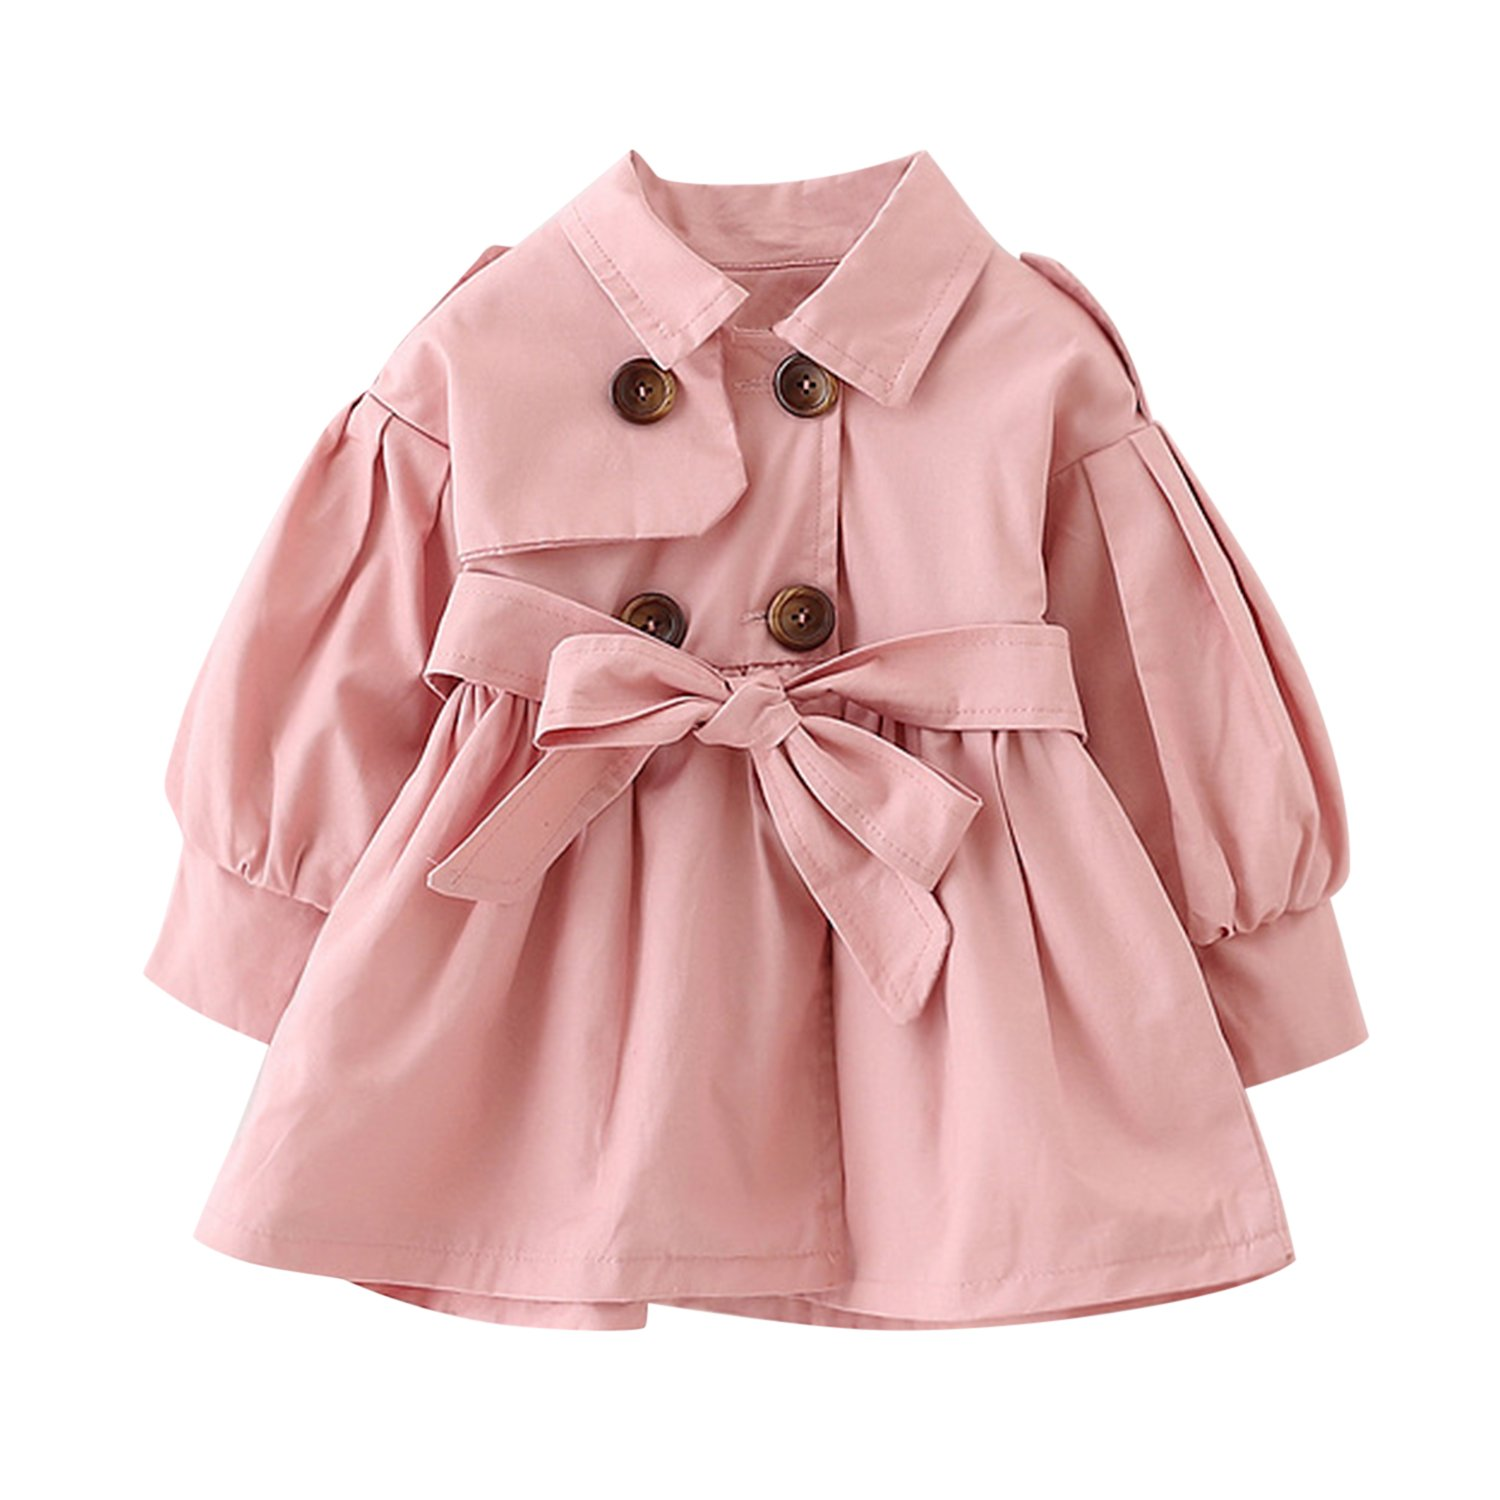 Evelin LEE Baby Girls Trench Coat Jacket Dress With Belt Ruffle Waist Windbreaker Outwear